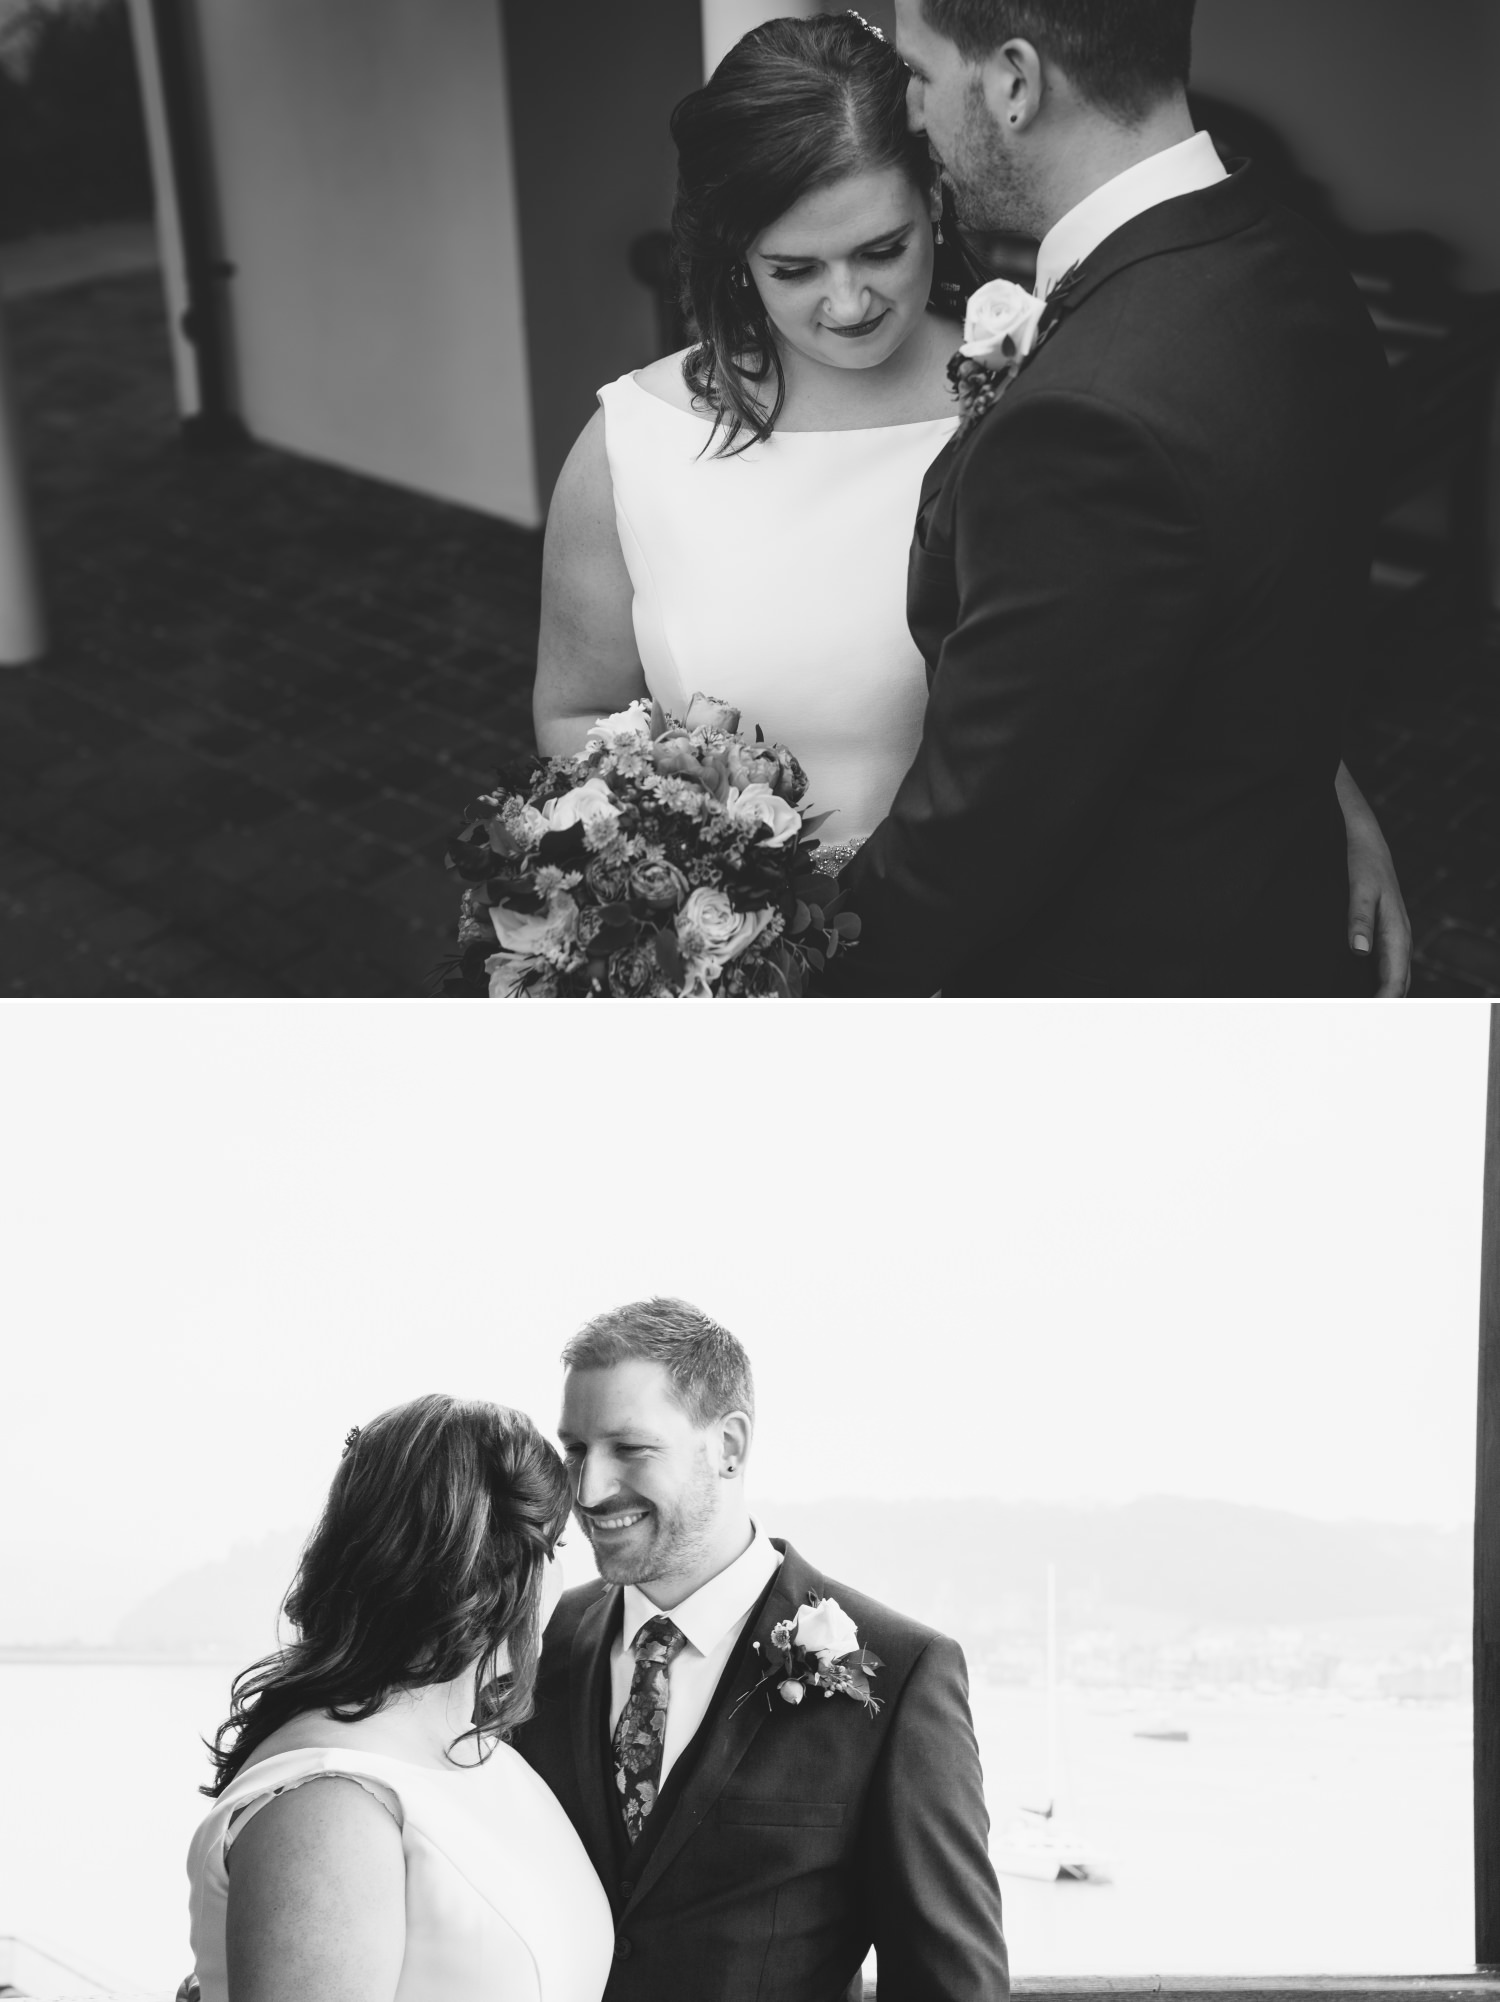 Wedding Photograph in black and white at Quay Hotel, North Wales